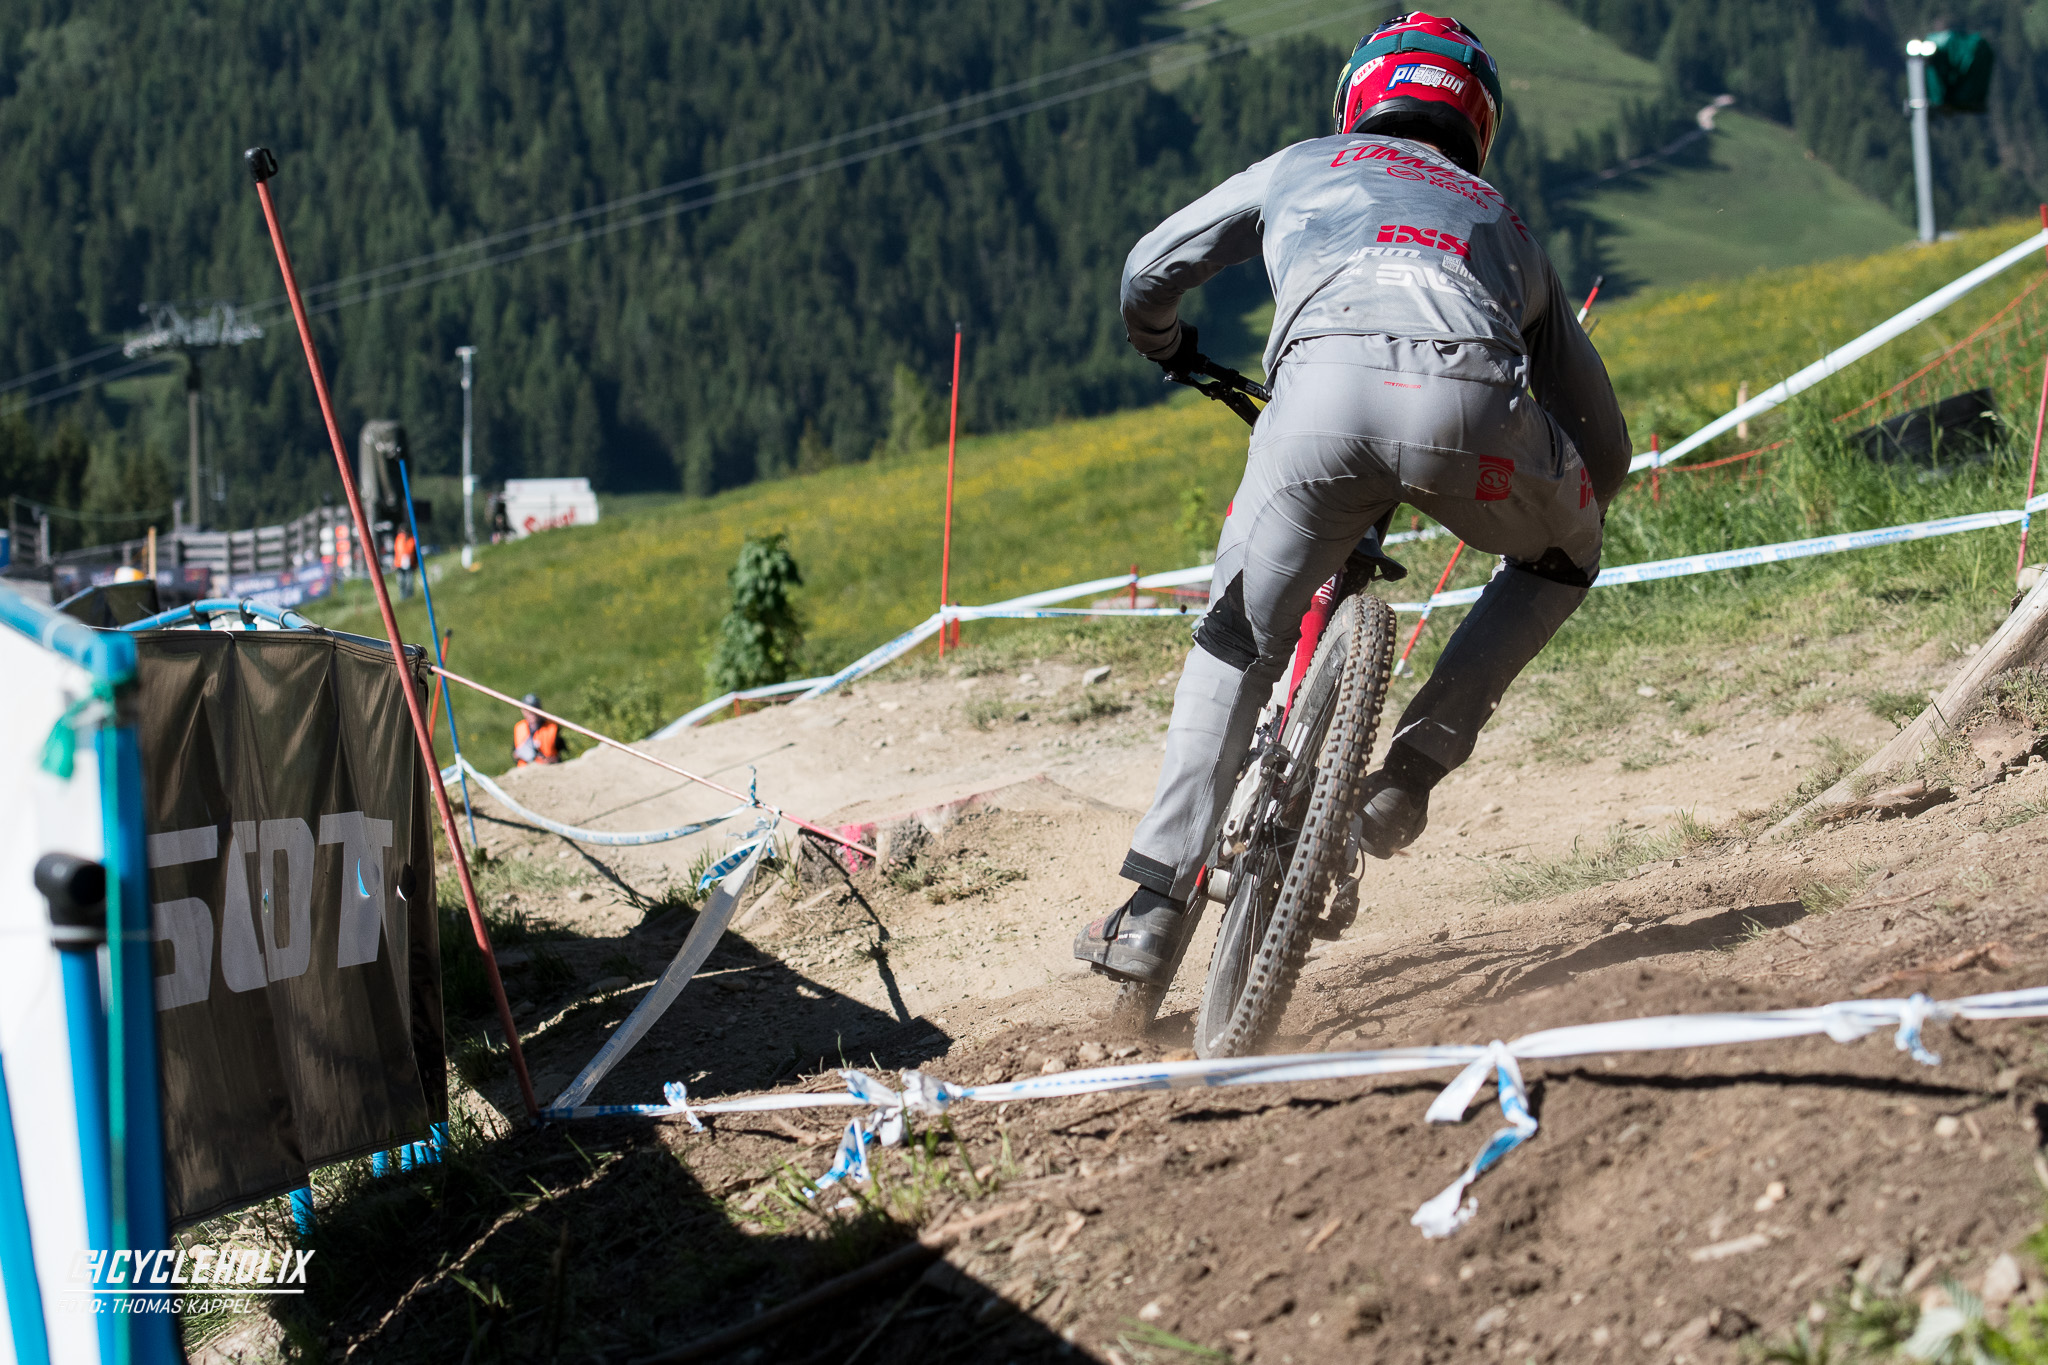 2019 Downhill Worldcup Leogang Finale Action FR 2